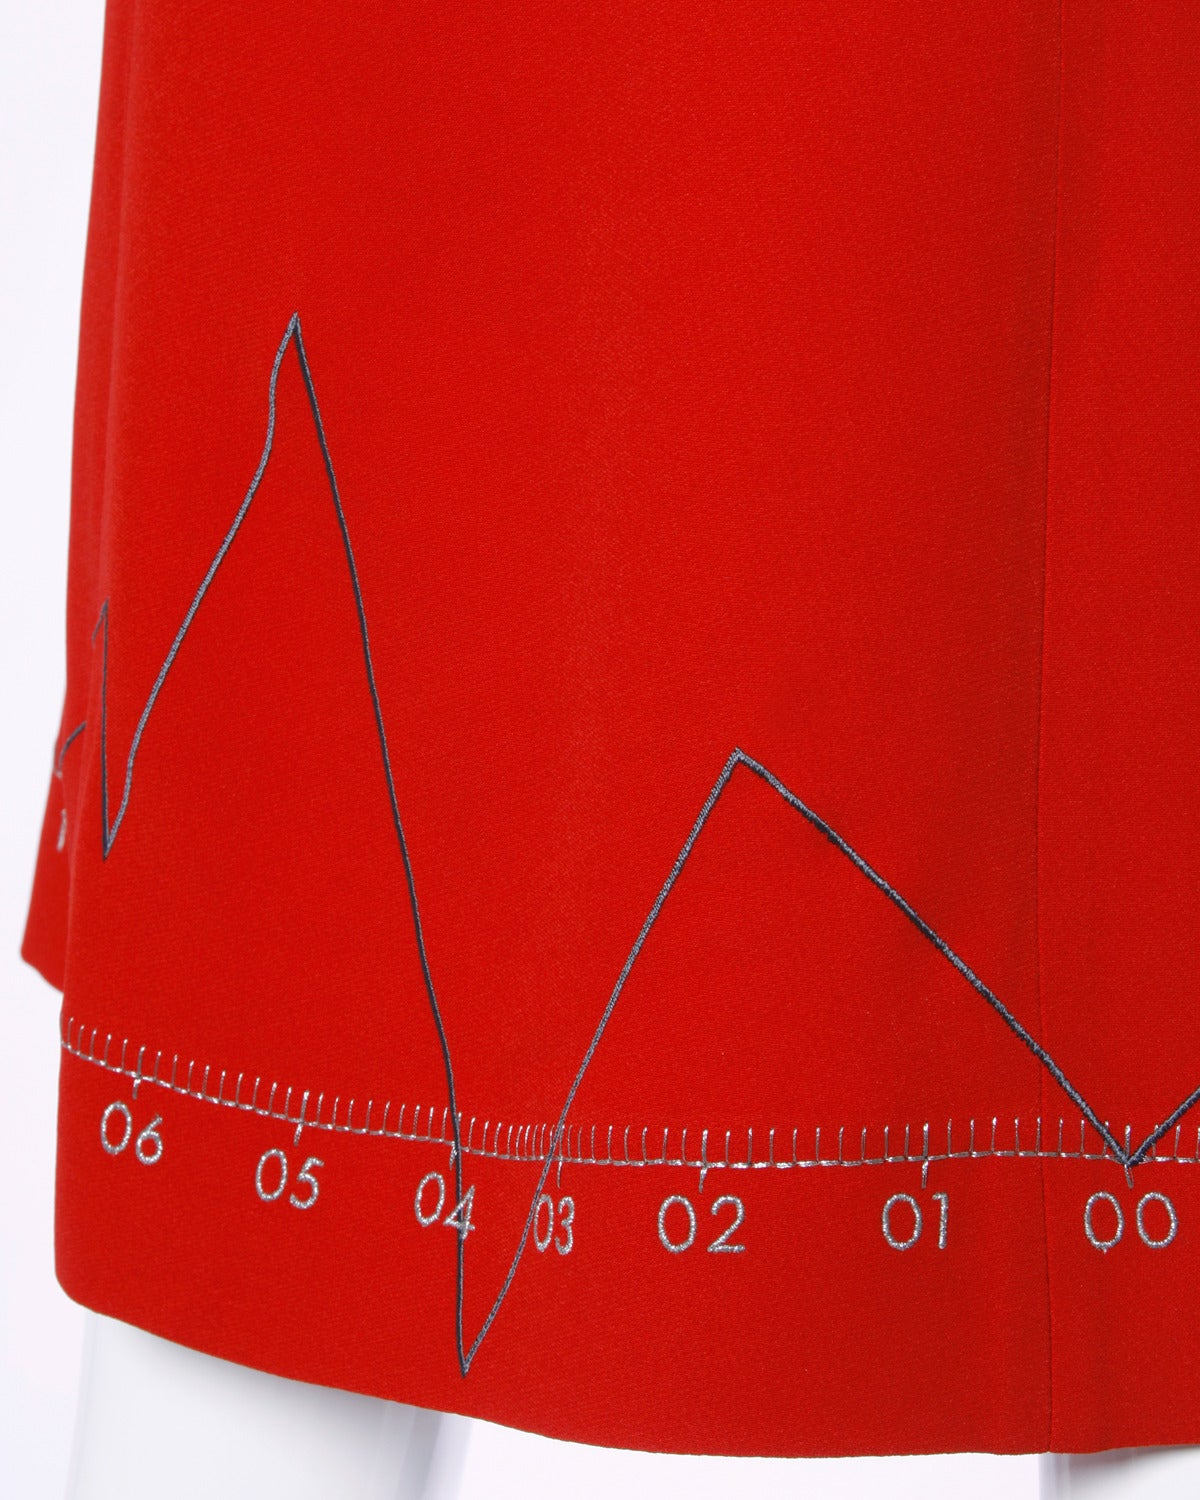 """Iconic Moschino Vintage 1990s 90s """"Love Charts + Graphs"""" Valentines Red Dress For Sale 1"""